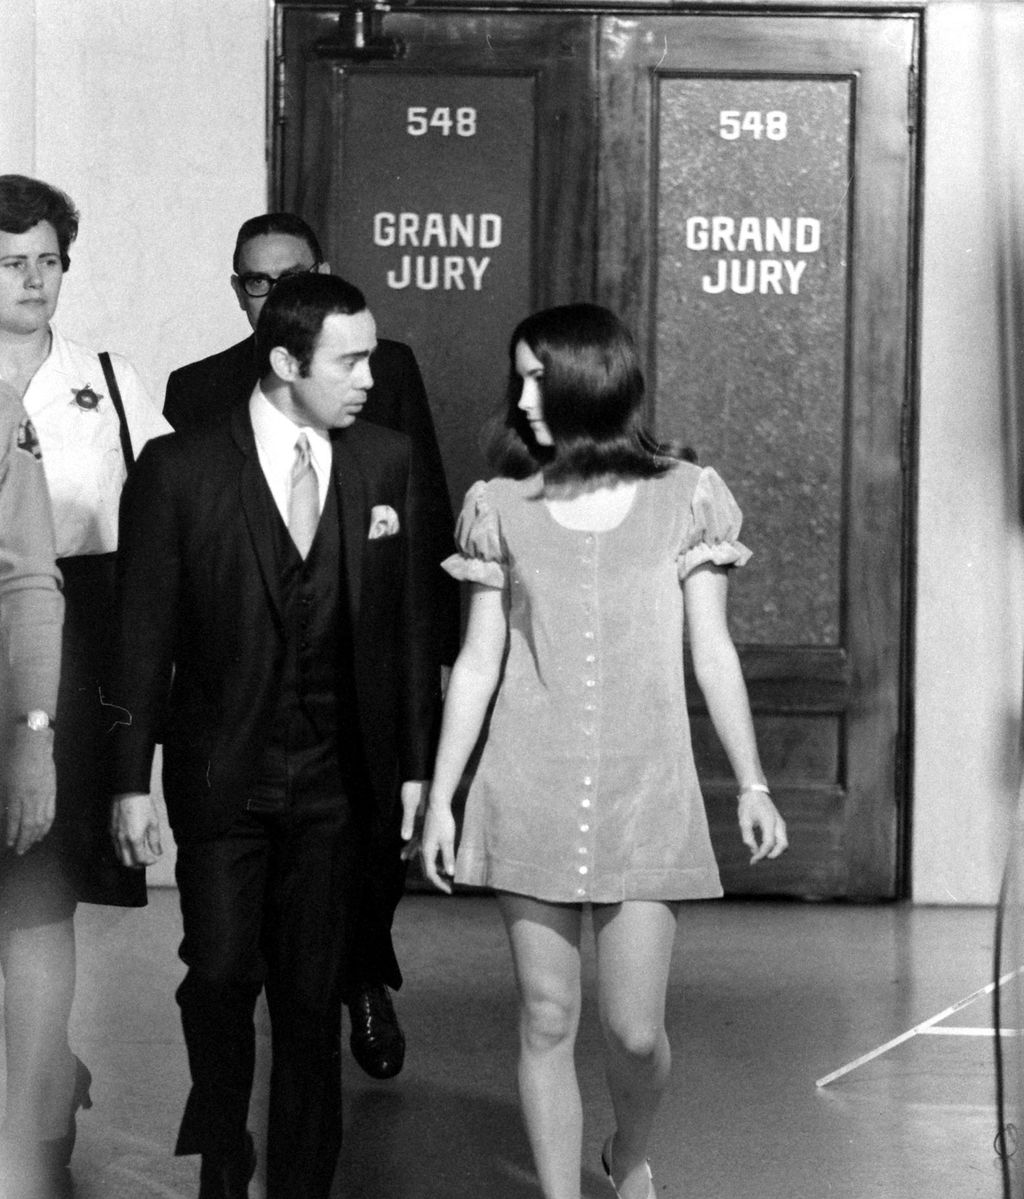 Susan Adkins, who was eventually convicted of the Manson family murders, leaves the grand jury room in a babydoll dress.